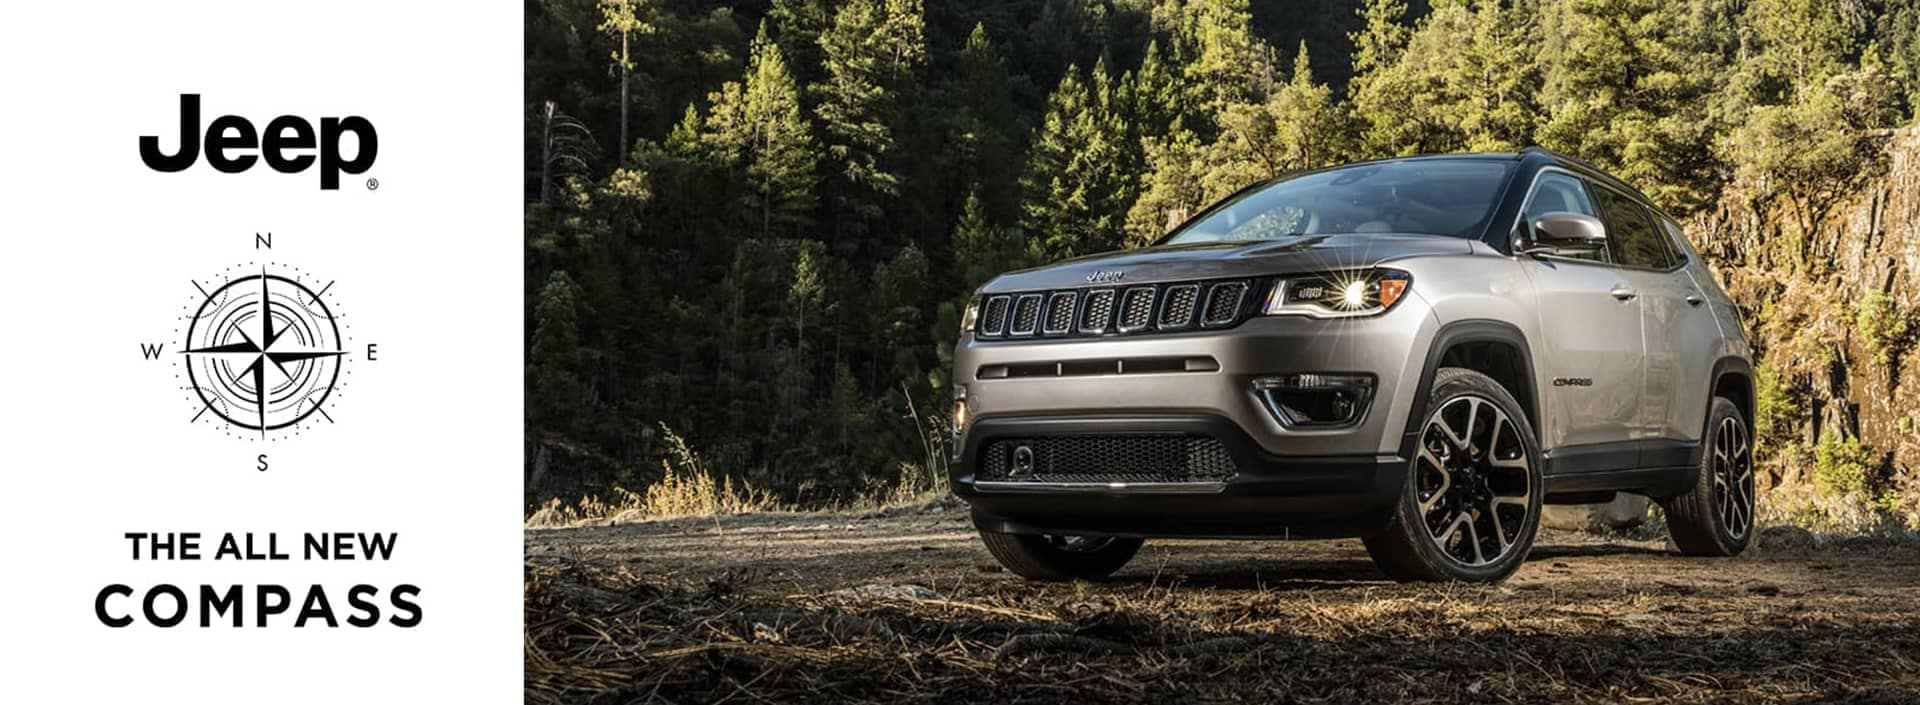 Jeep Compass Desktop